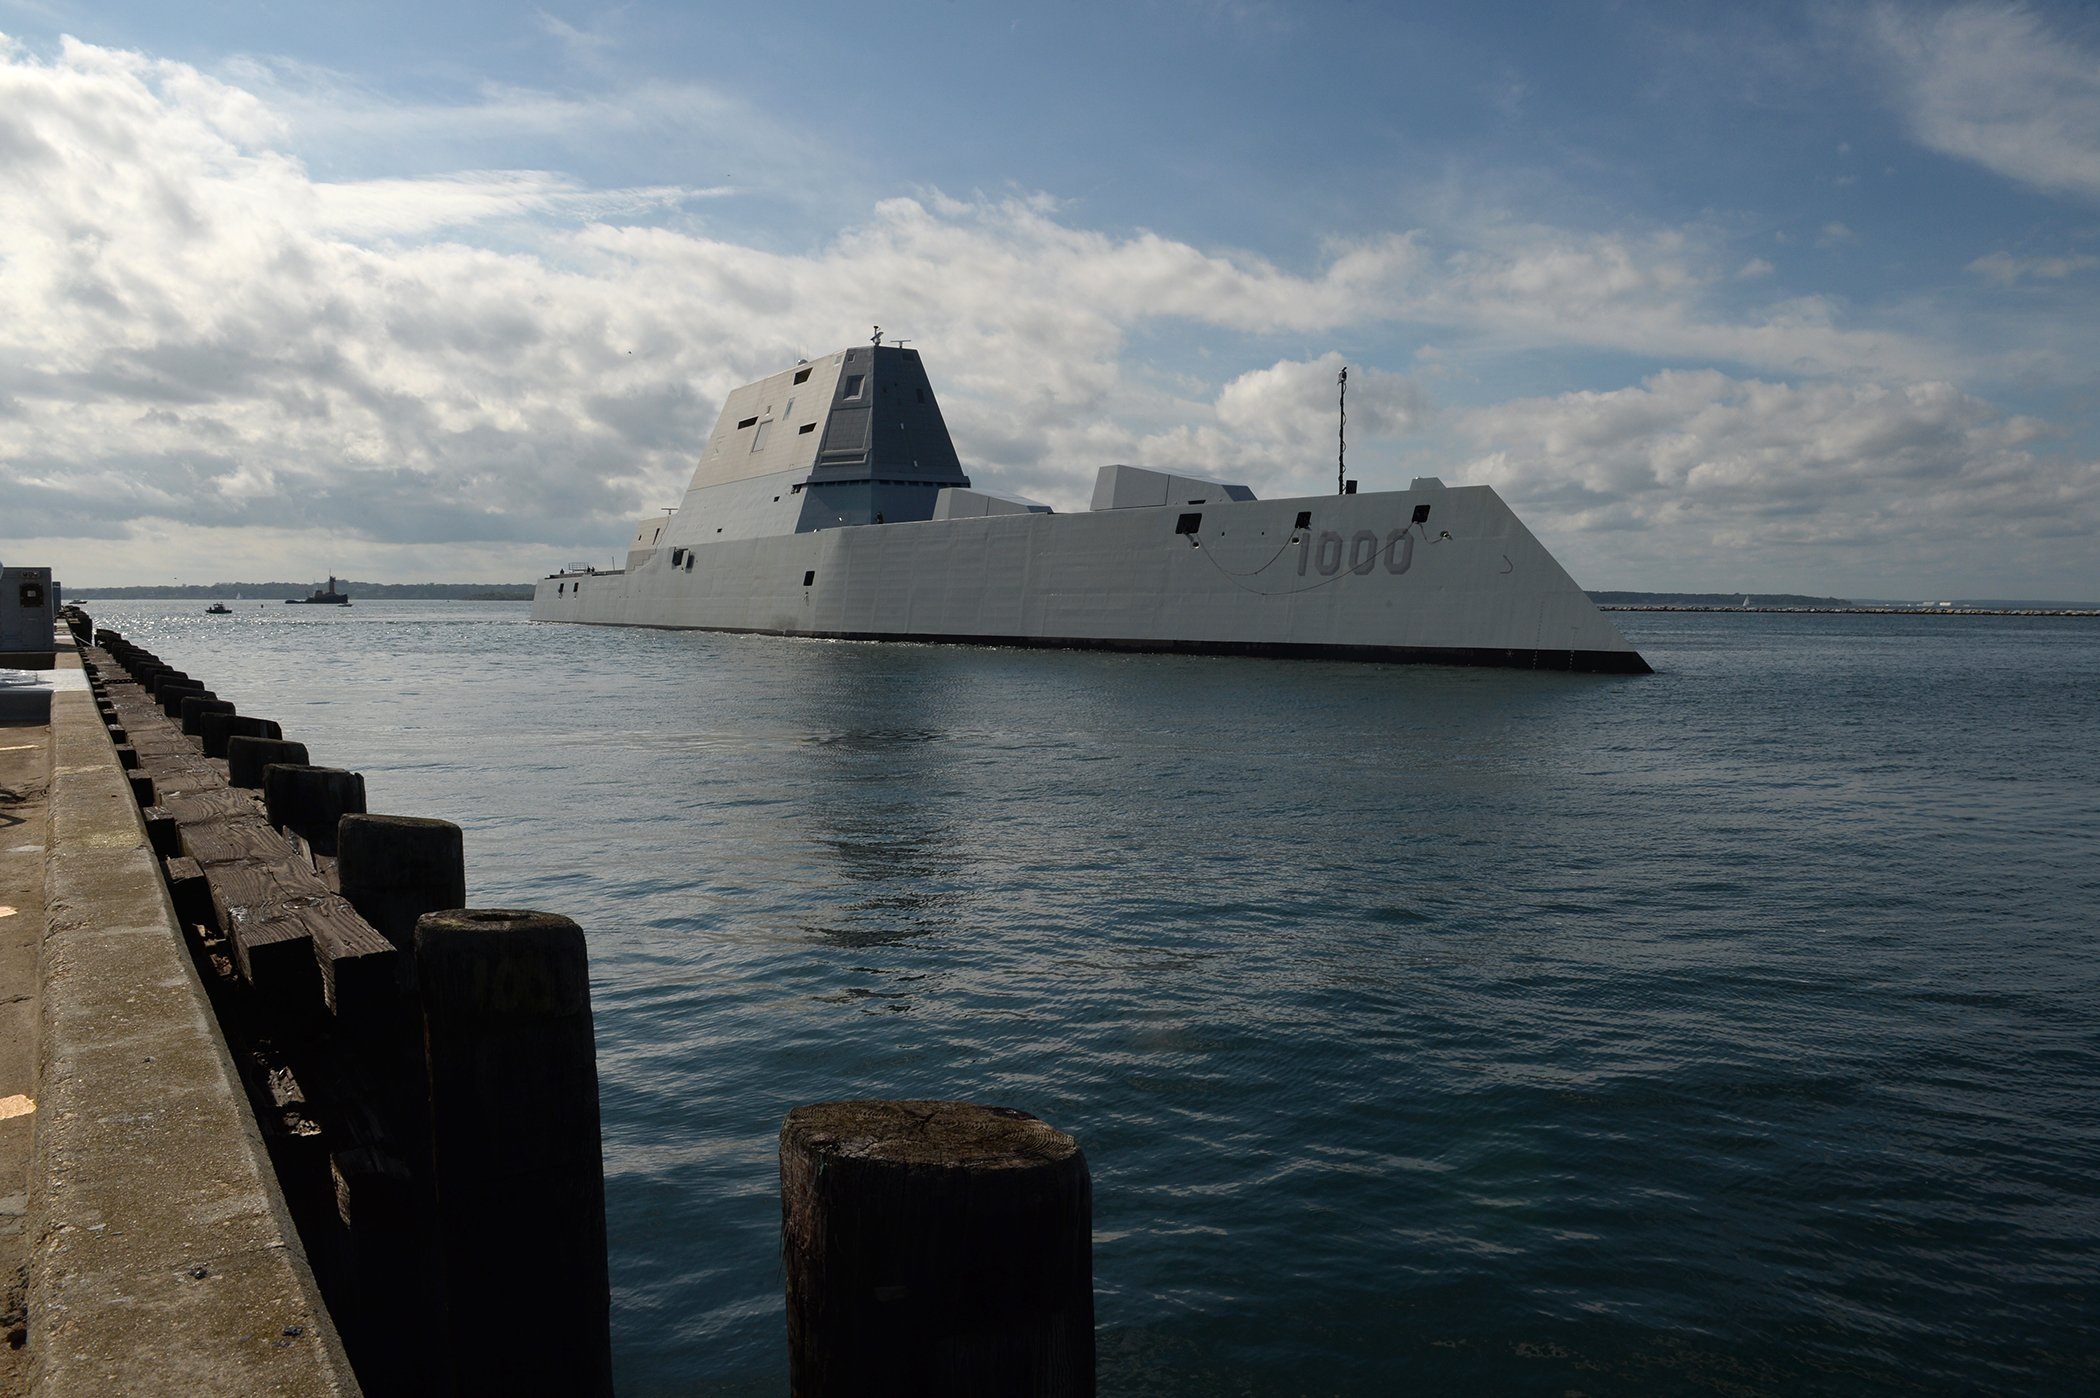 US Navy's most advanced destroyer USS Zumwalt breaks down again